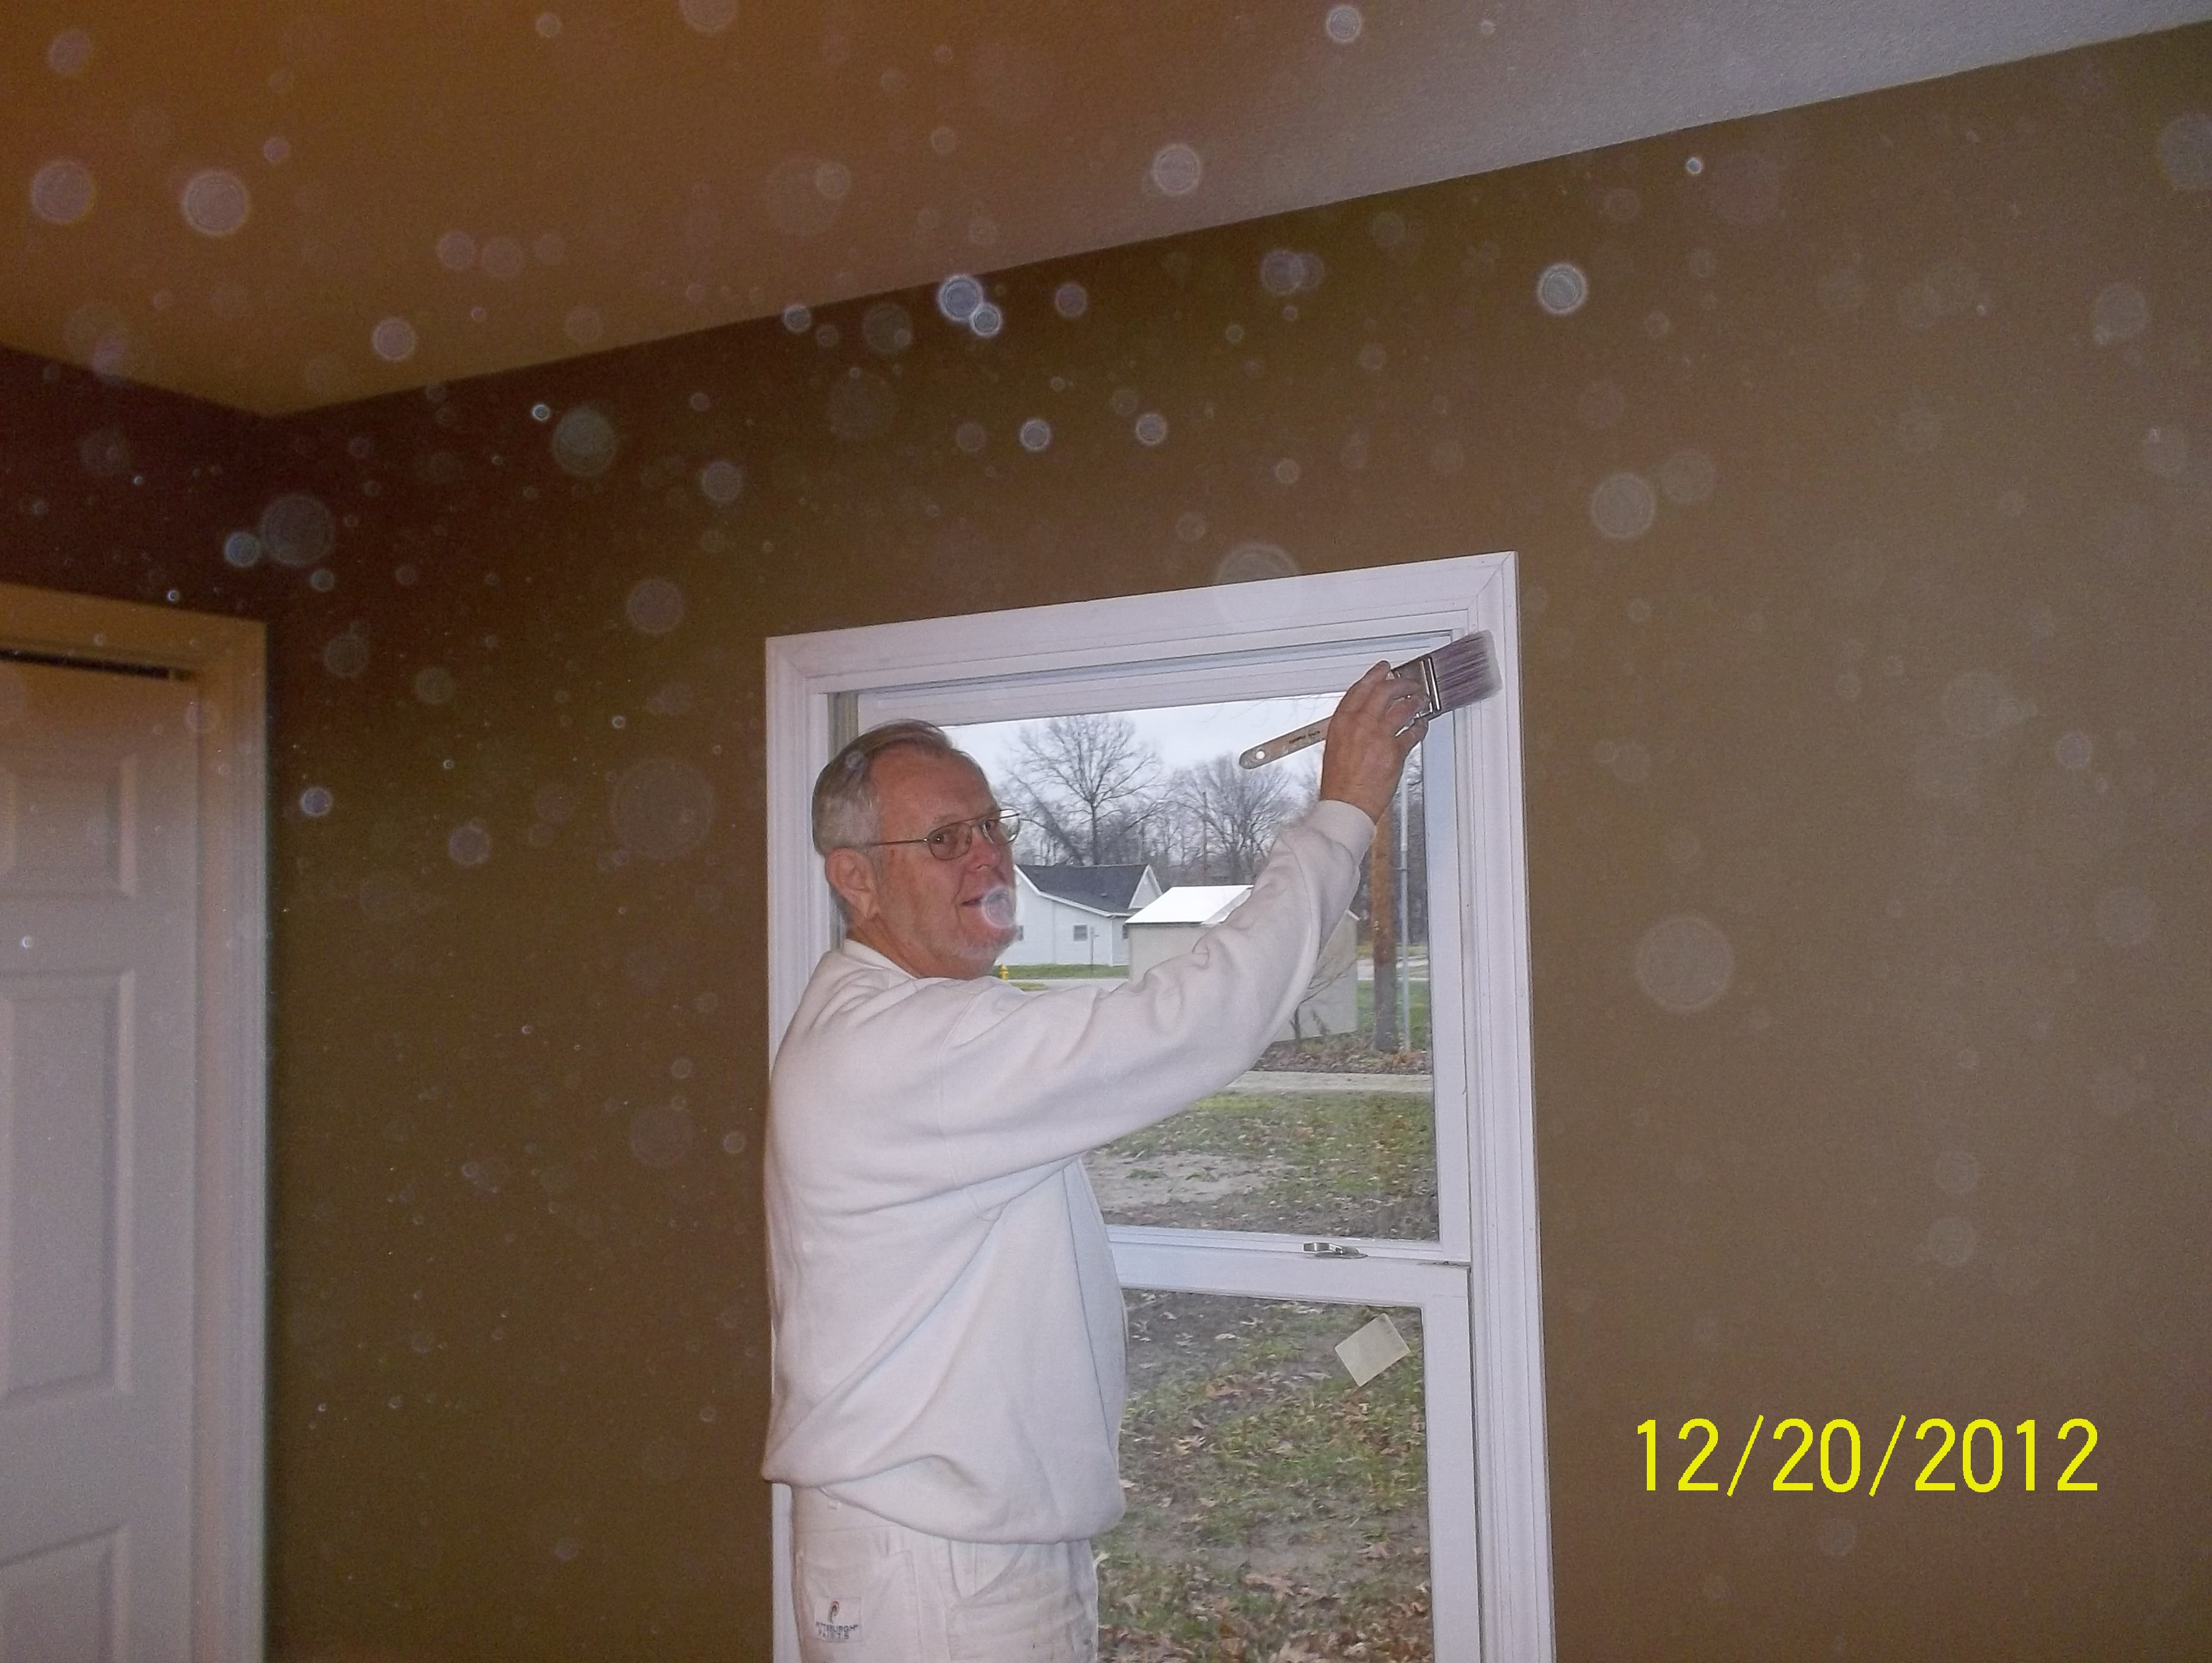 Jim Delattre of Delattre Painting donates his time to place the finishing touches on the master bedroom